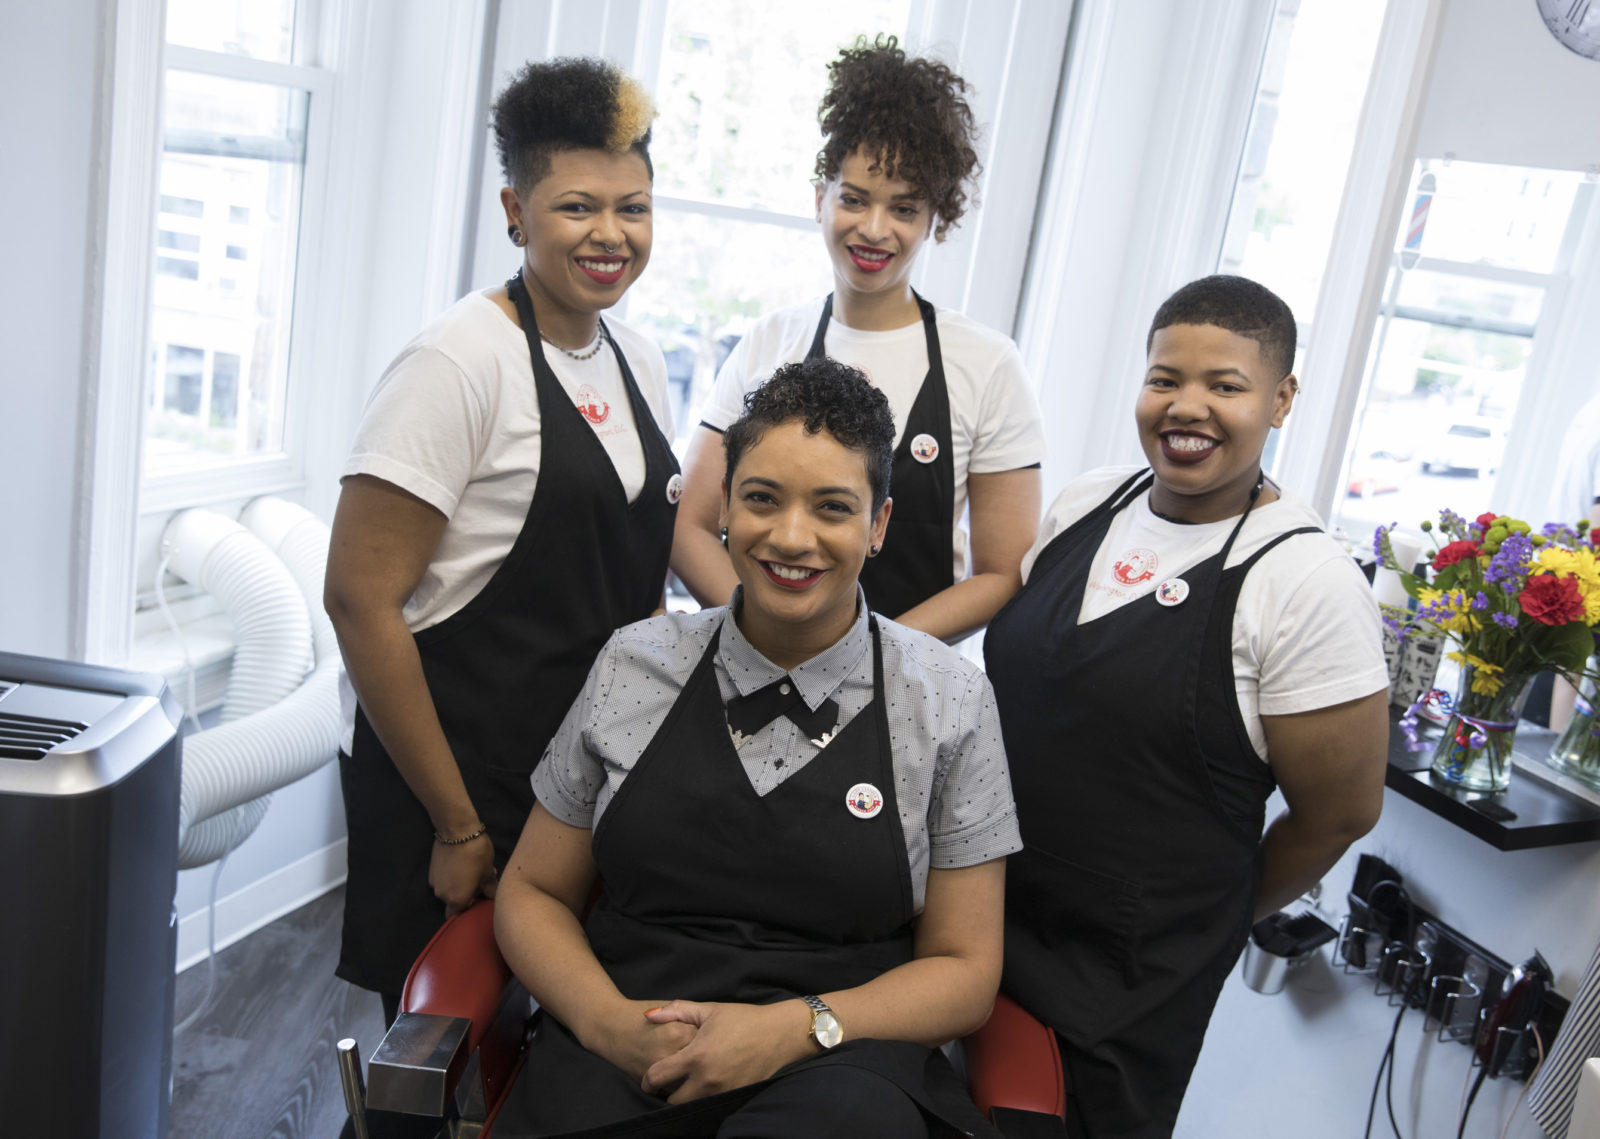 Lady Clipper barbers: Lesley Bryant in front. In back, Gabby Smith, left, Daisy Robinson, middle, and Jo Woodard, right. Photo credit: Tyrone Turner / DCist